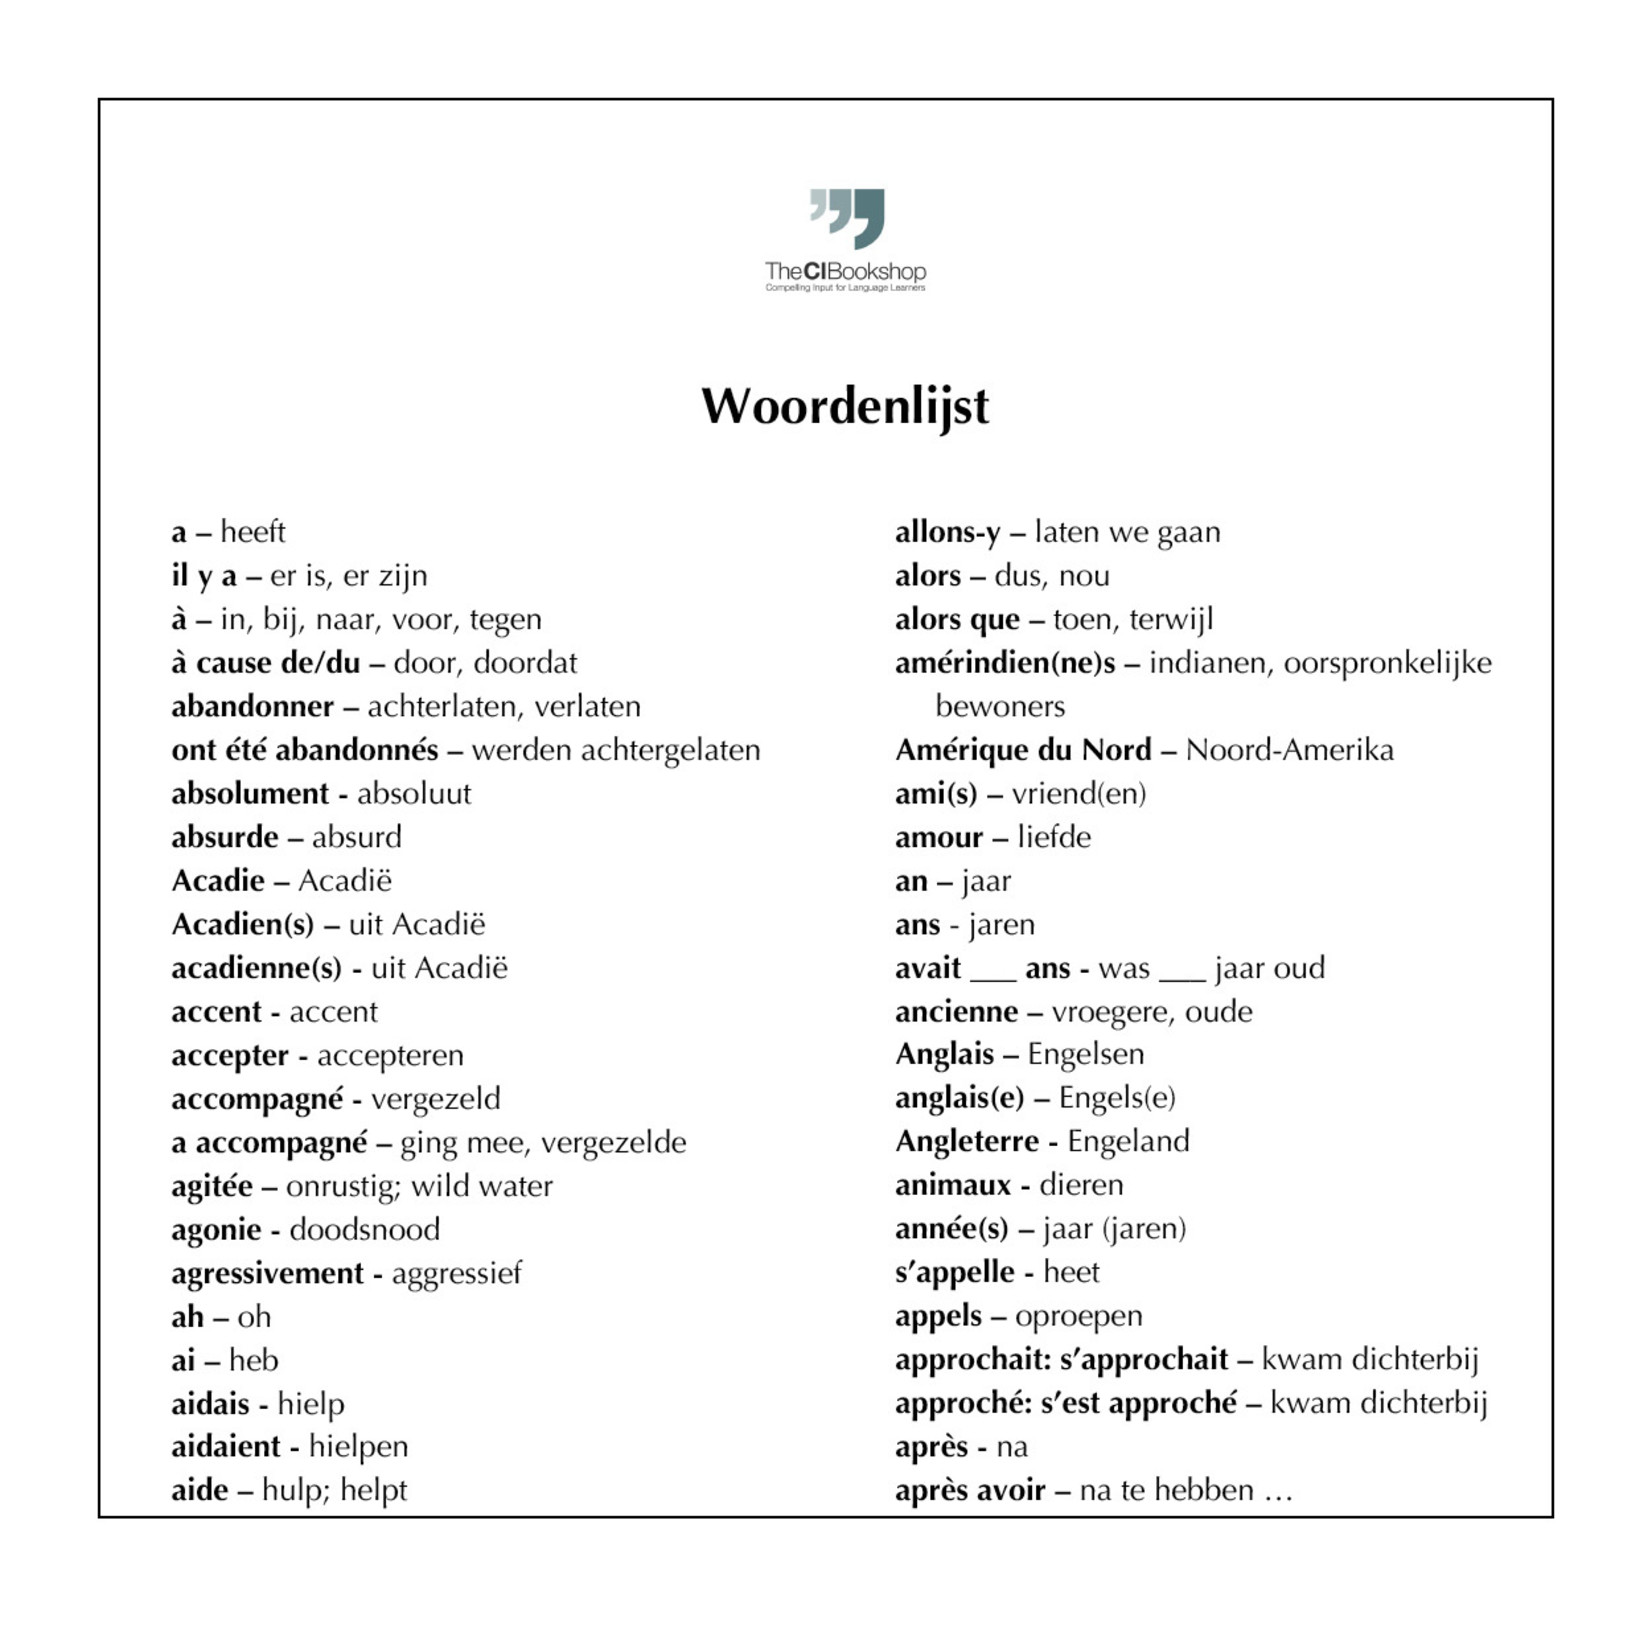 Dutch glossary for Une obsession dangereuse